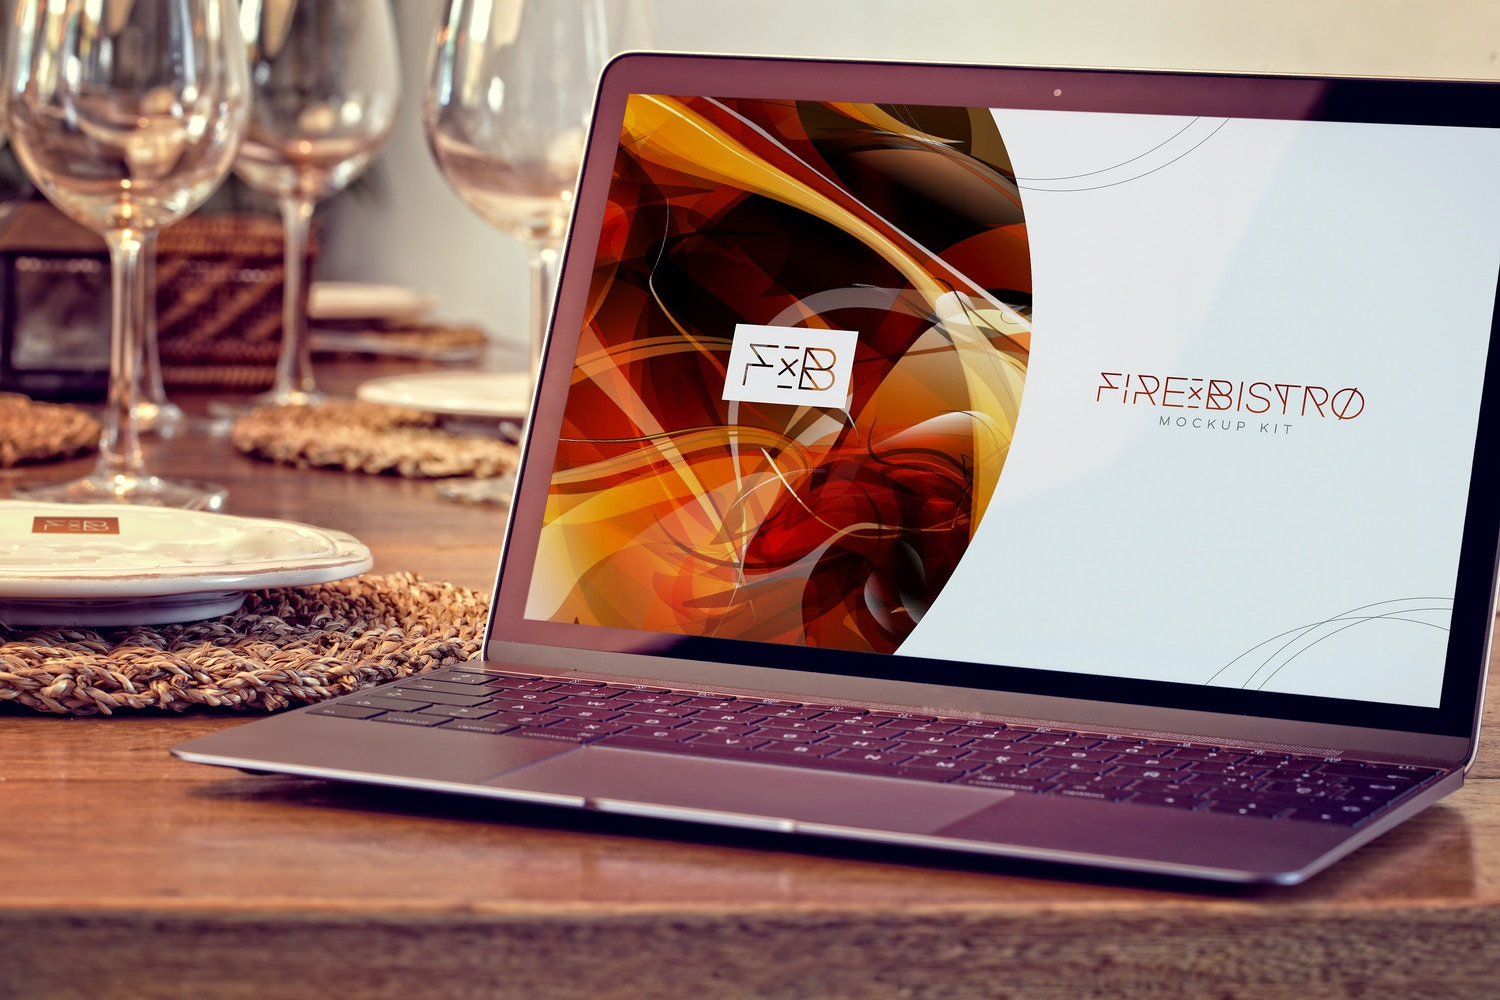 Macbook Mockup 01 by 4to Pixel on Original Mockups